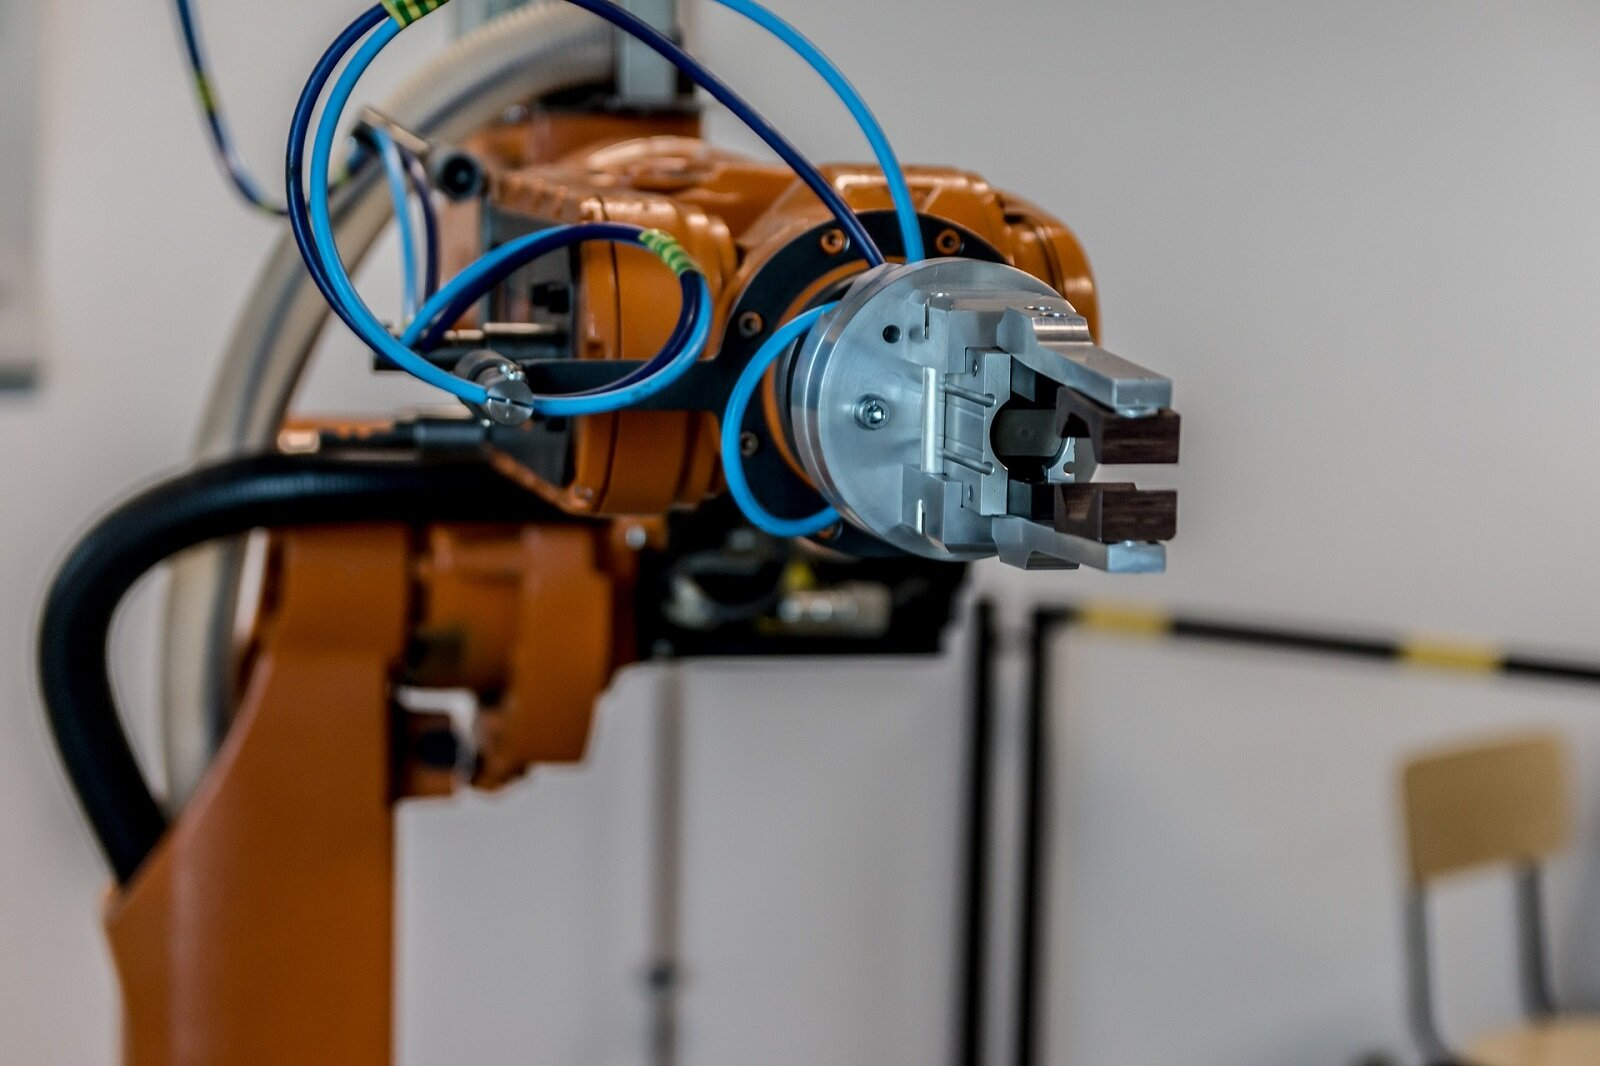 Automated Manufacturing: Not as Scary as it Sounds